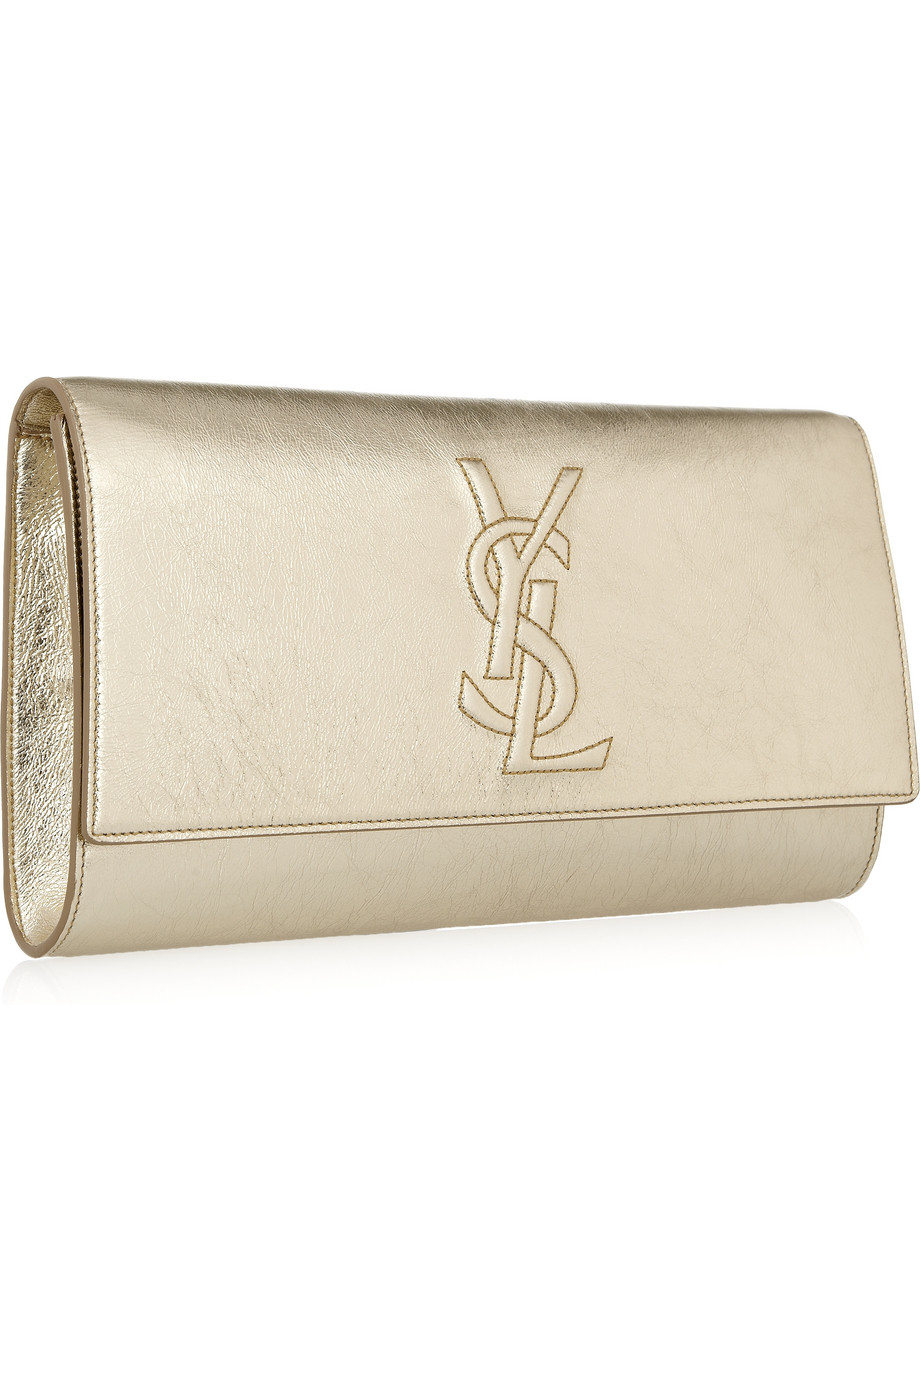 yves saint laurent clutch for women